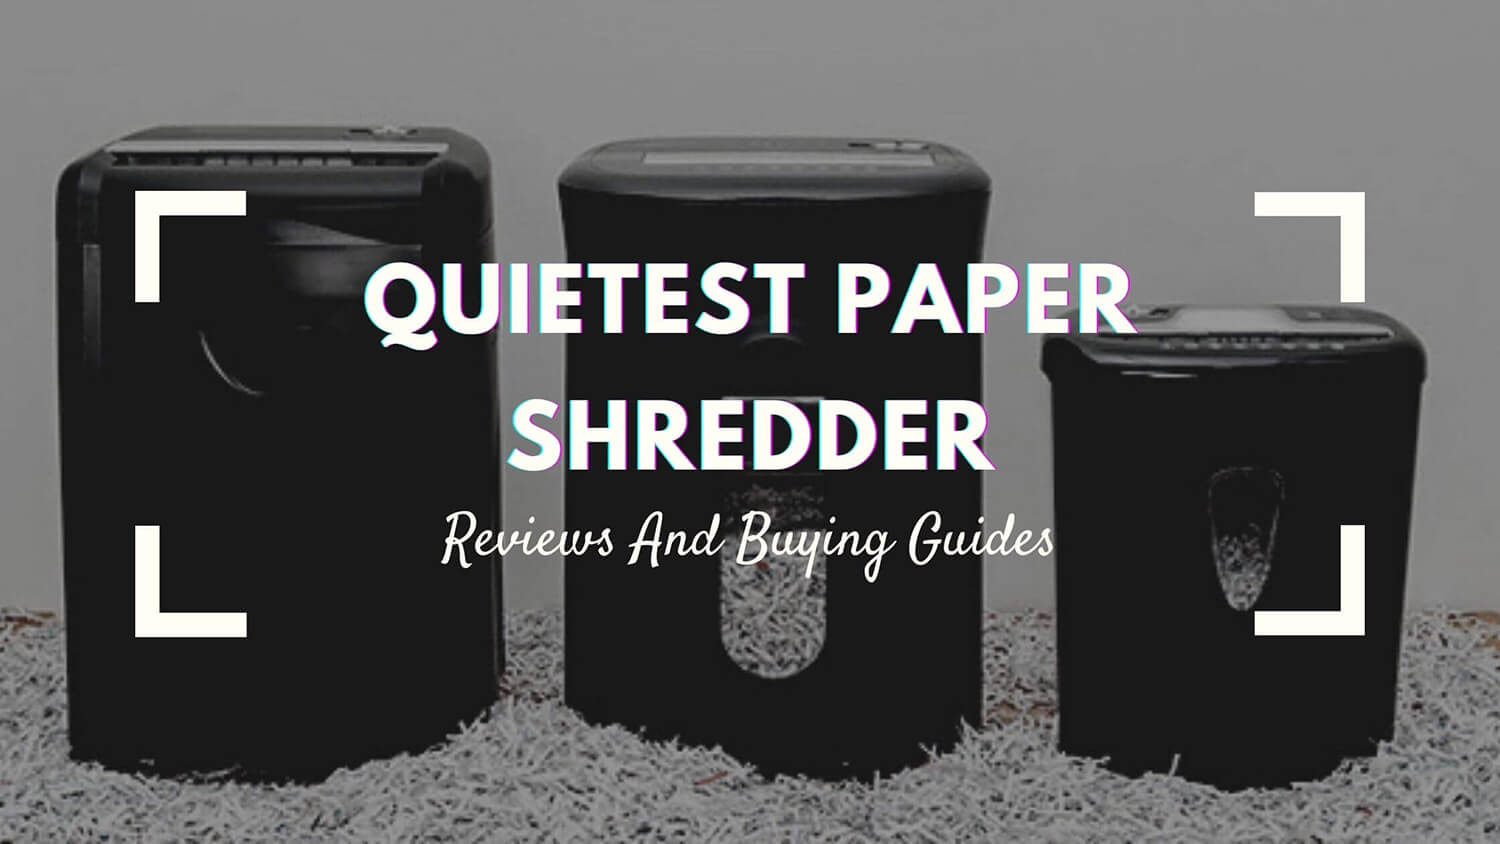 Quietest Paper Shredder